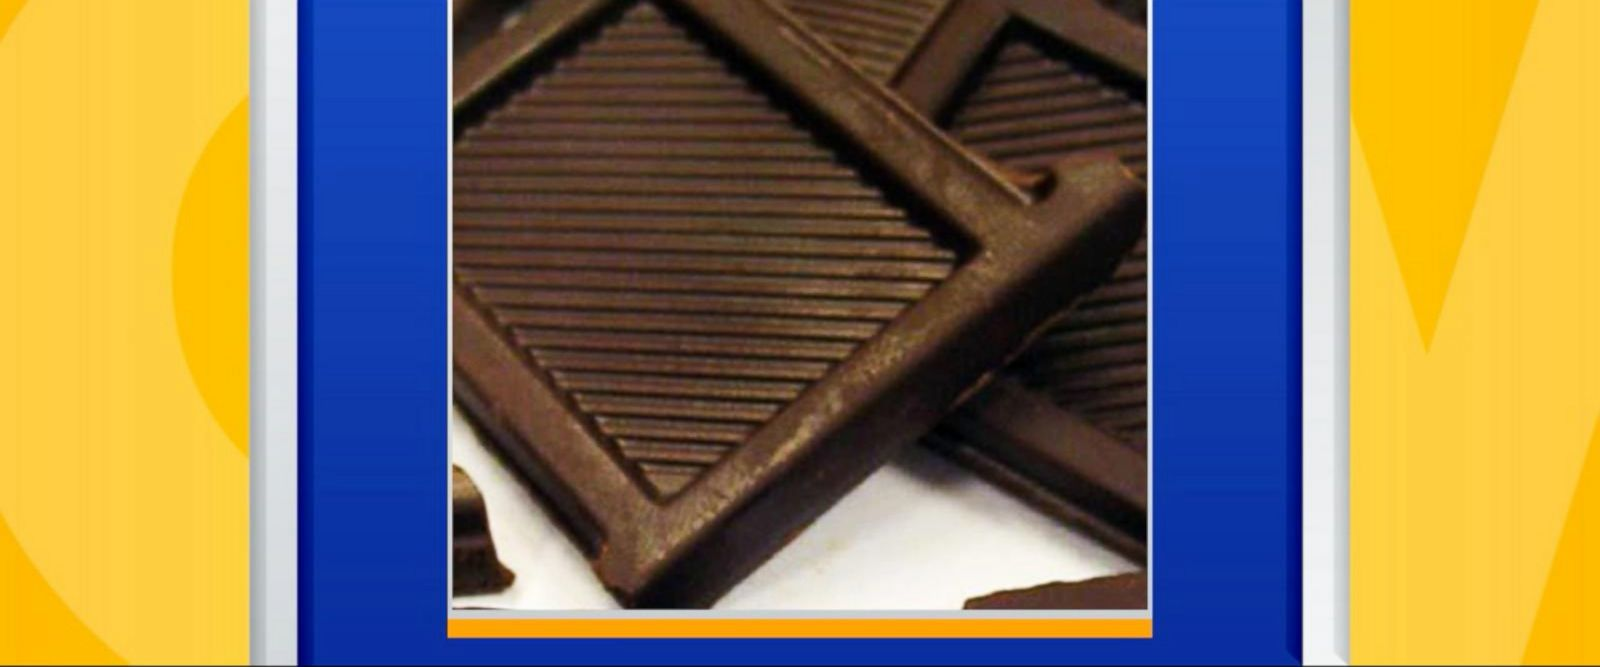 VIDEO: Does dark chocolate make you smarter?